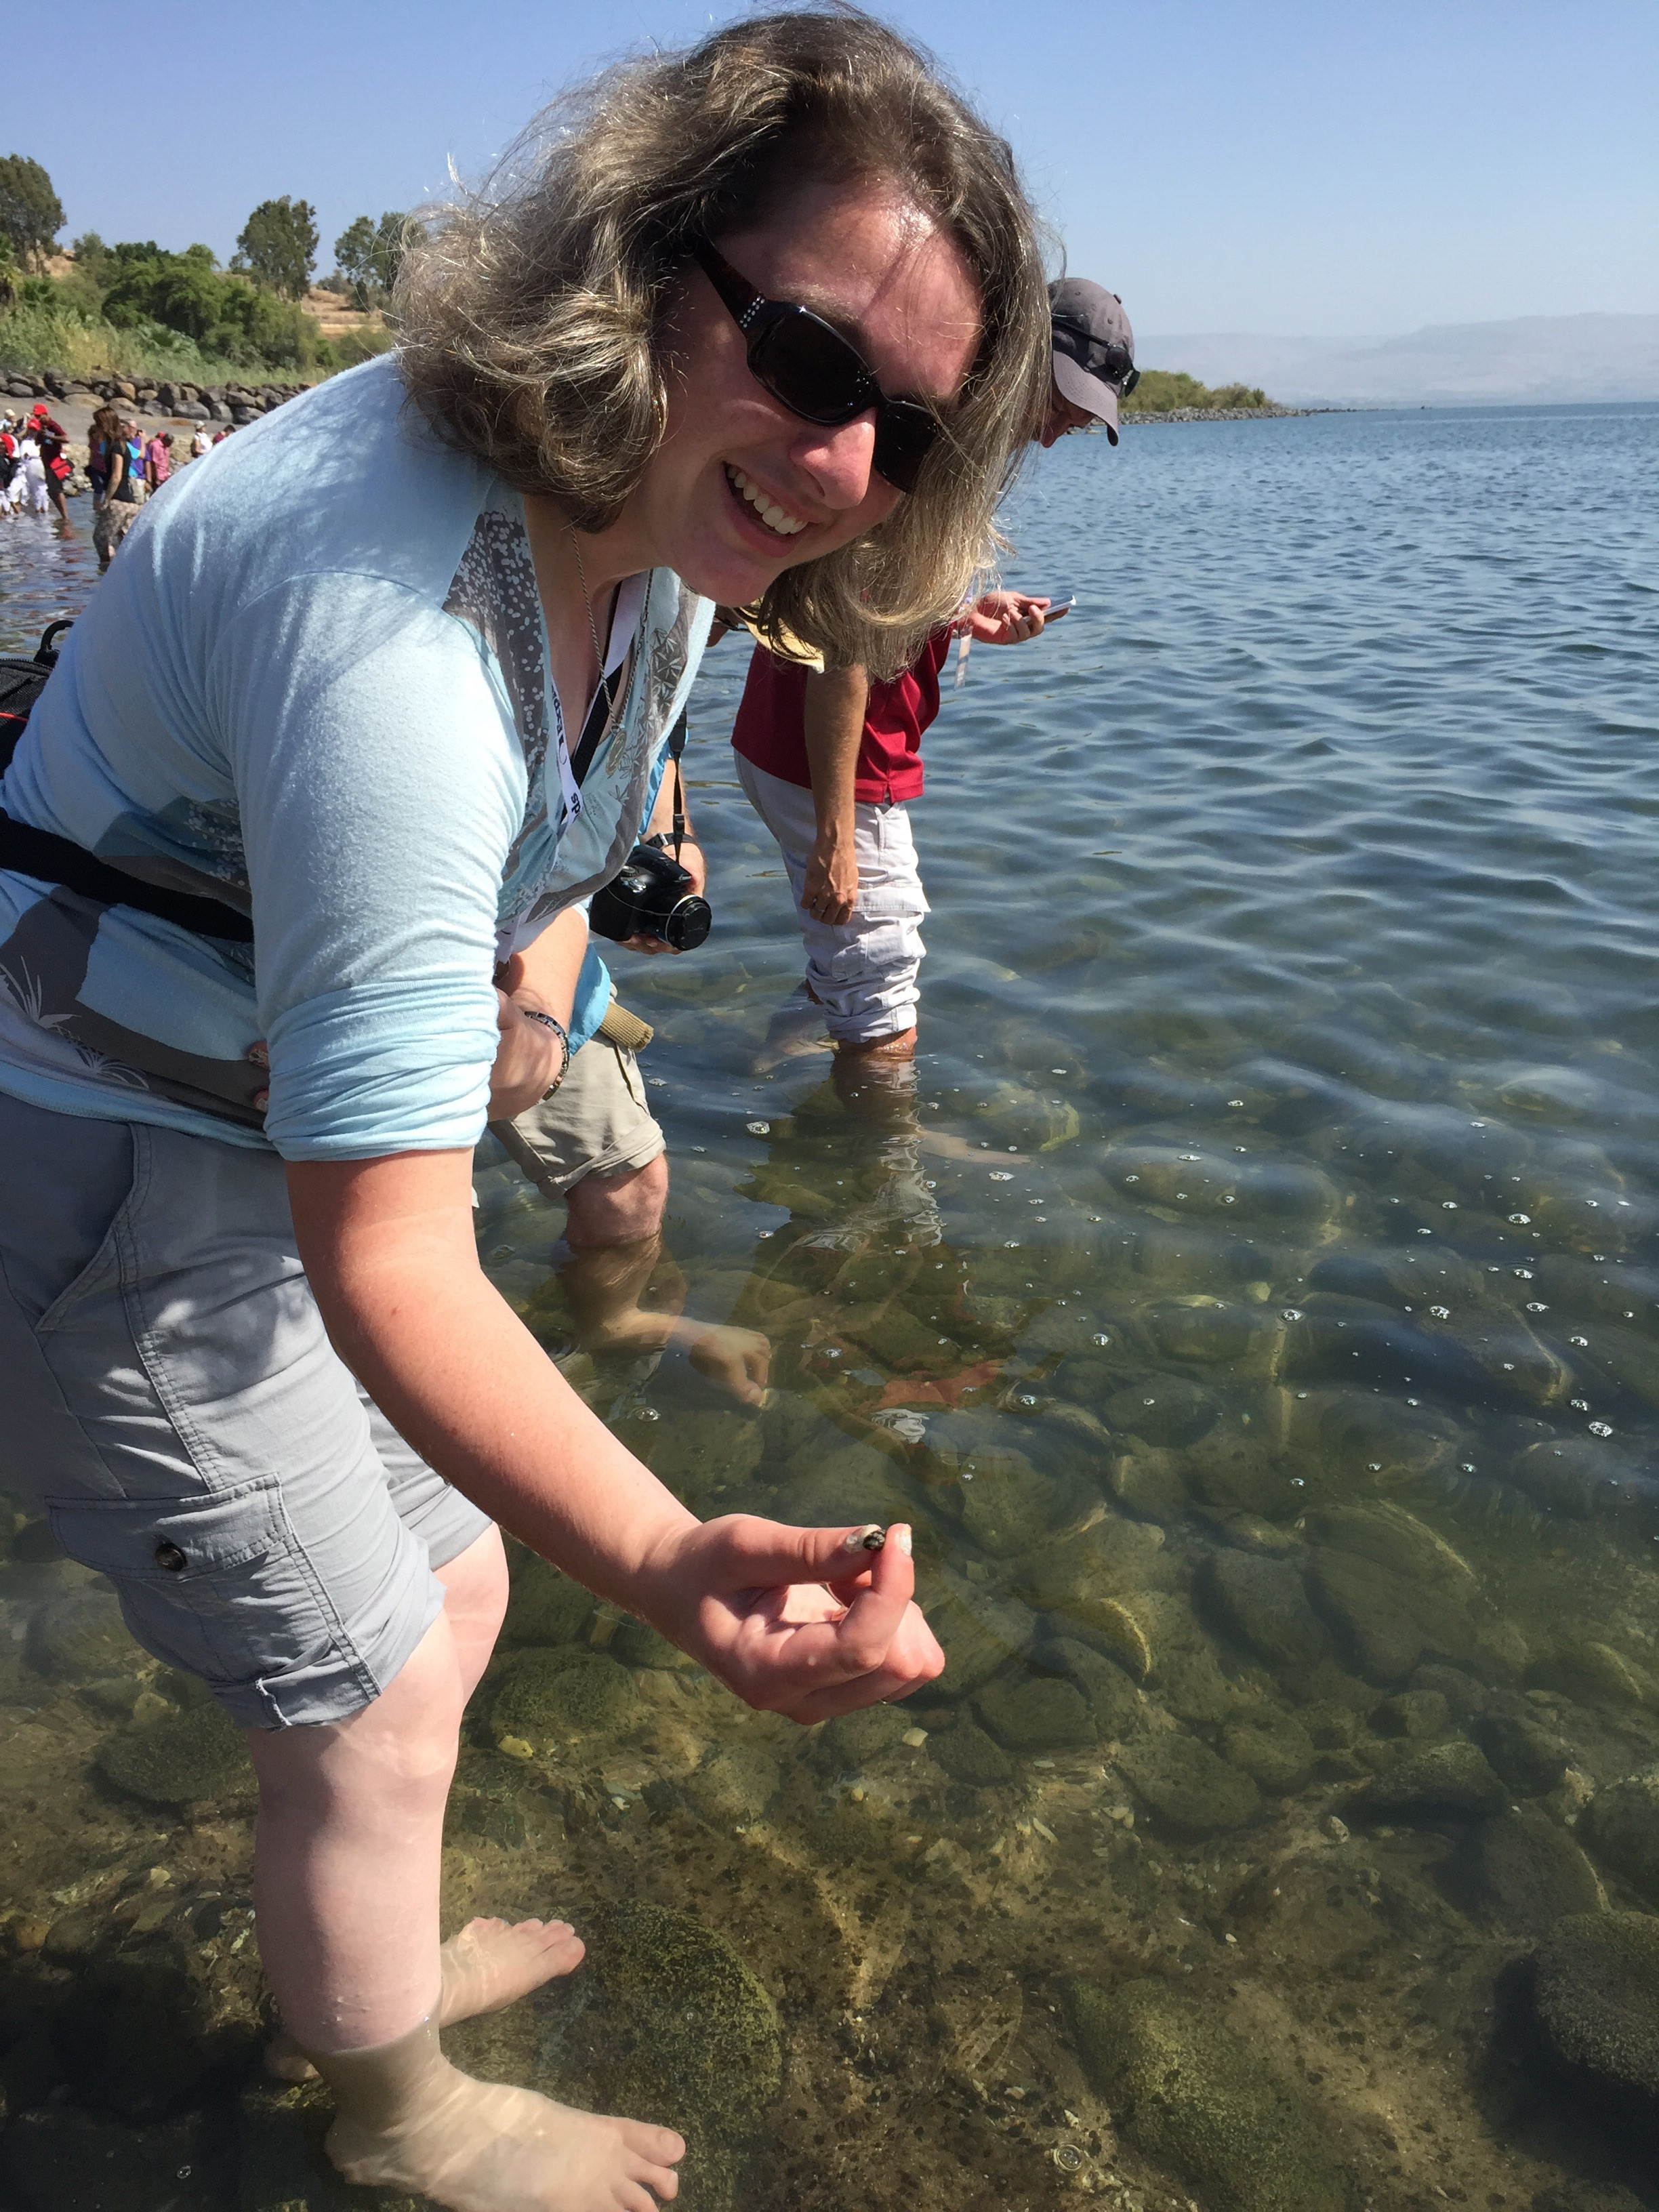 Anna showing me one of the small snails in the lake.